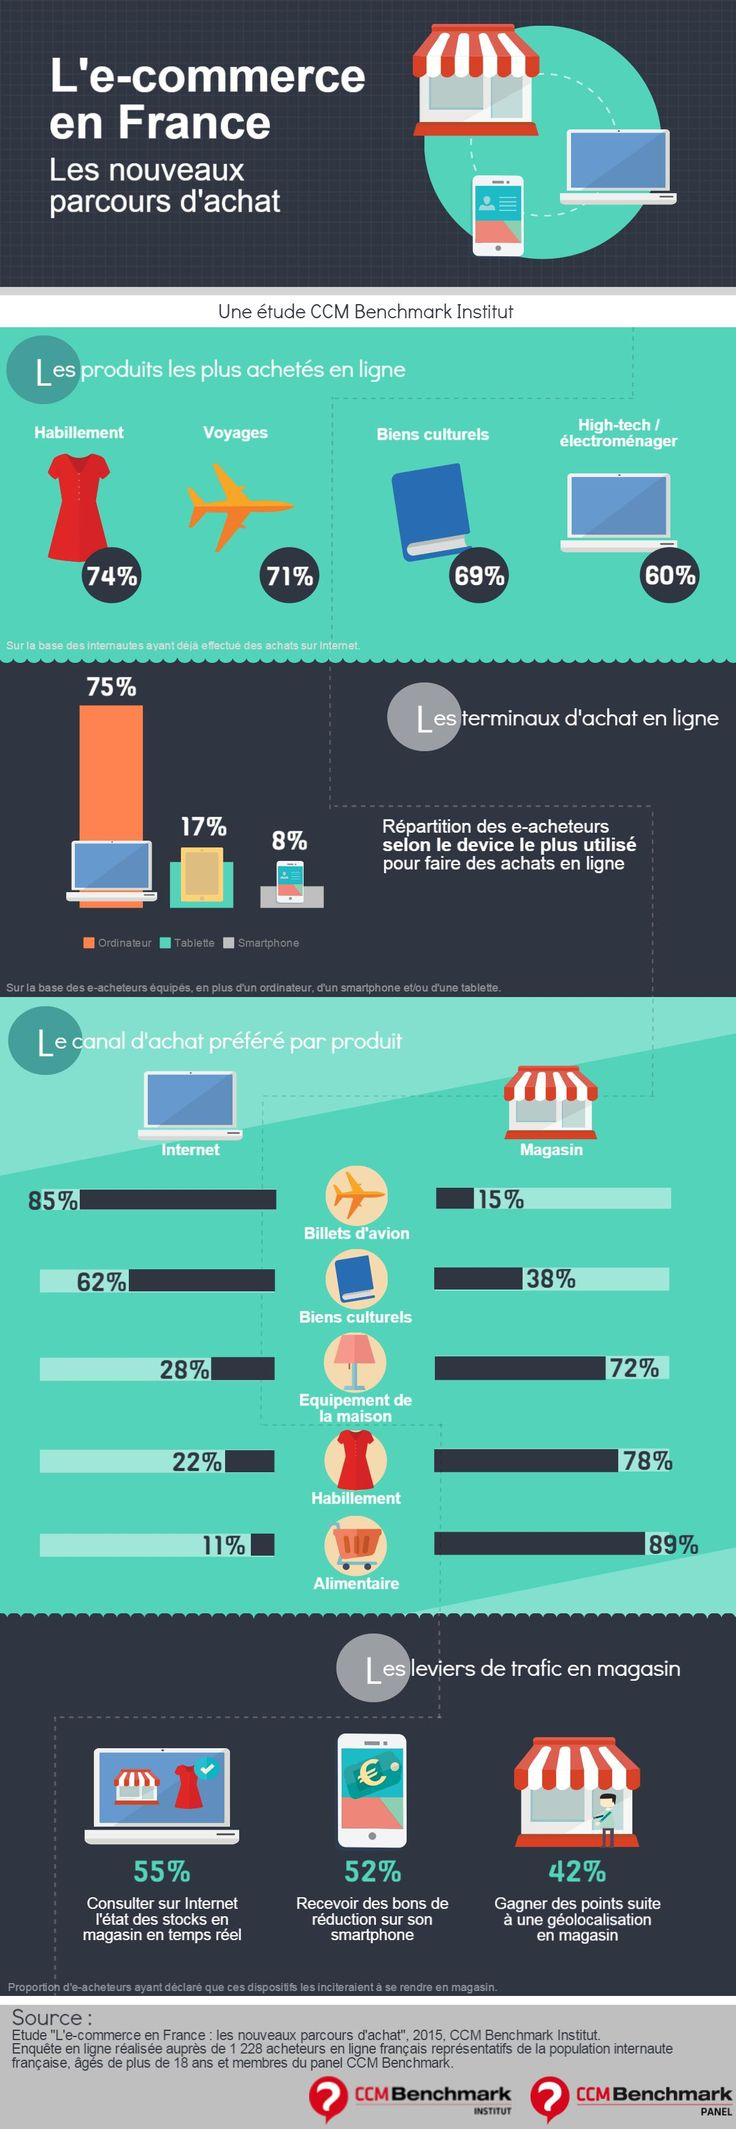 Infographie : l'e-commerce en France (sept. 2015)